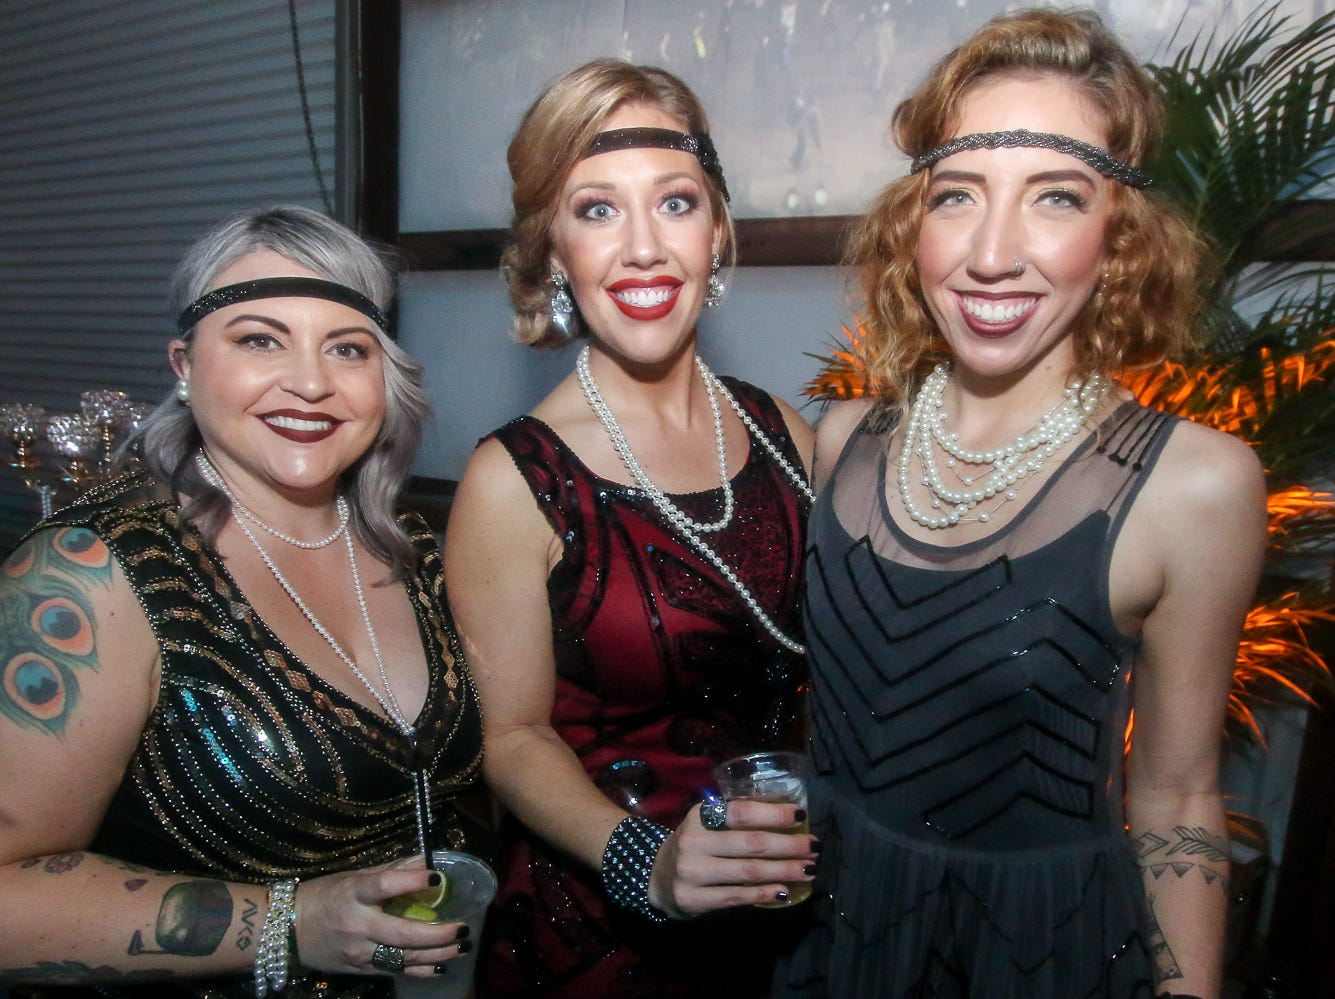 The Krewe of Gatsby Girls hosted its 5th annual Gatsby Girls Speakeasy Ball, featuring music by Ben Loftin and Matt Powell, at DeLuna Winery on Saturday, December 29, 2018. The event helped raise money for Capstone Adaptive Learning & Therapy Centers.